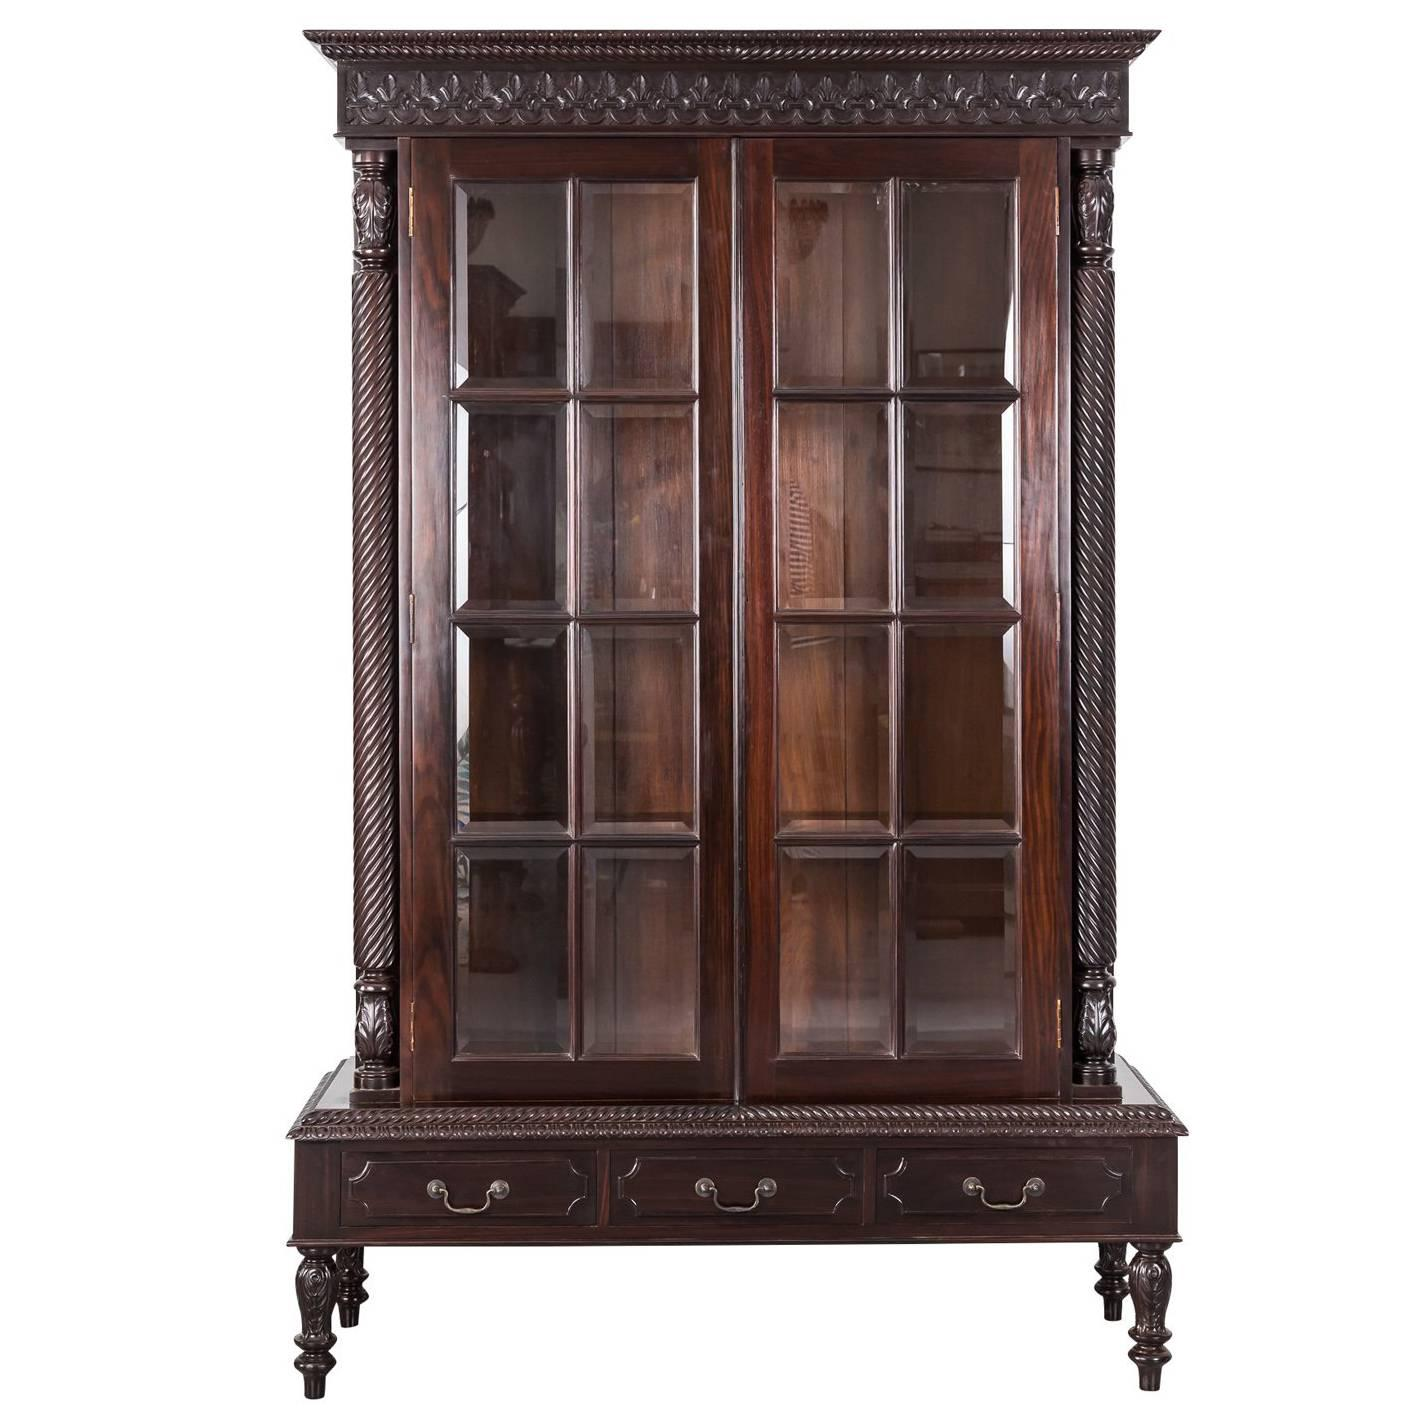 Antique Anglo-Indian or British Colonial Rosewood Cabinet on Stand ...